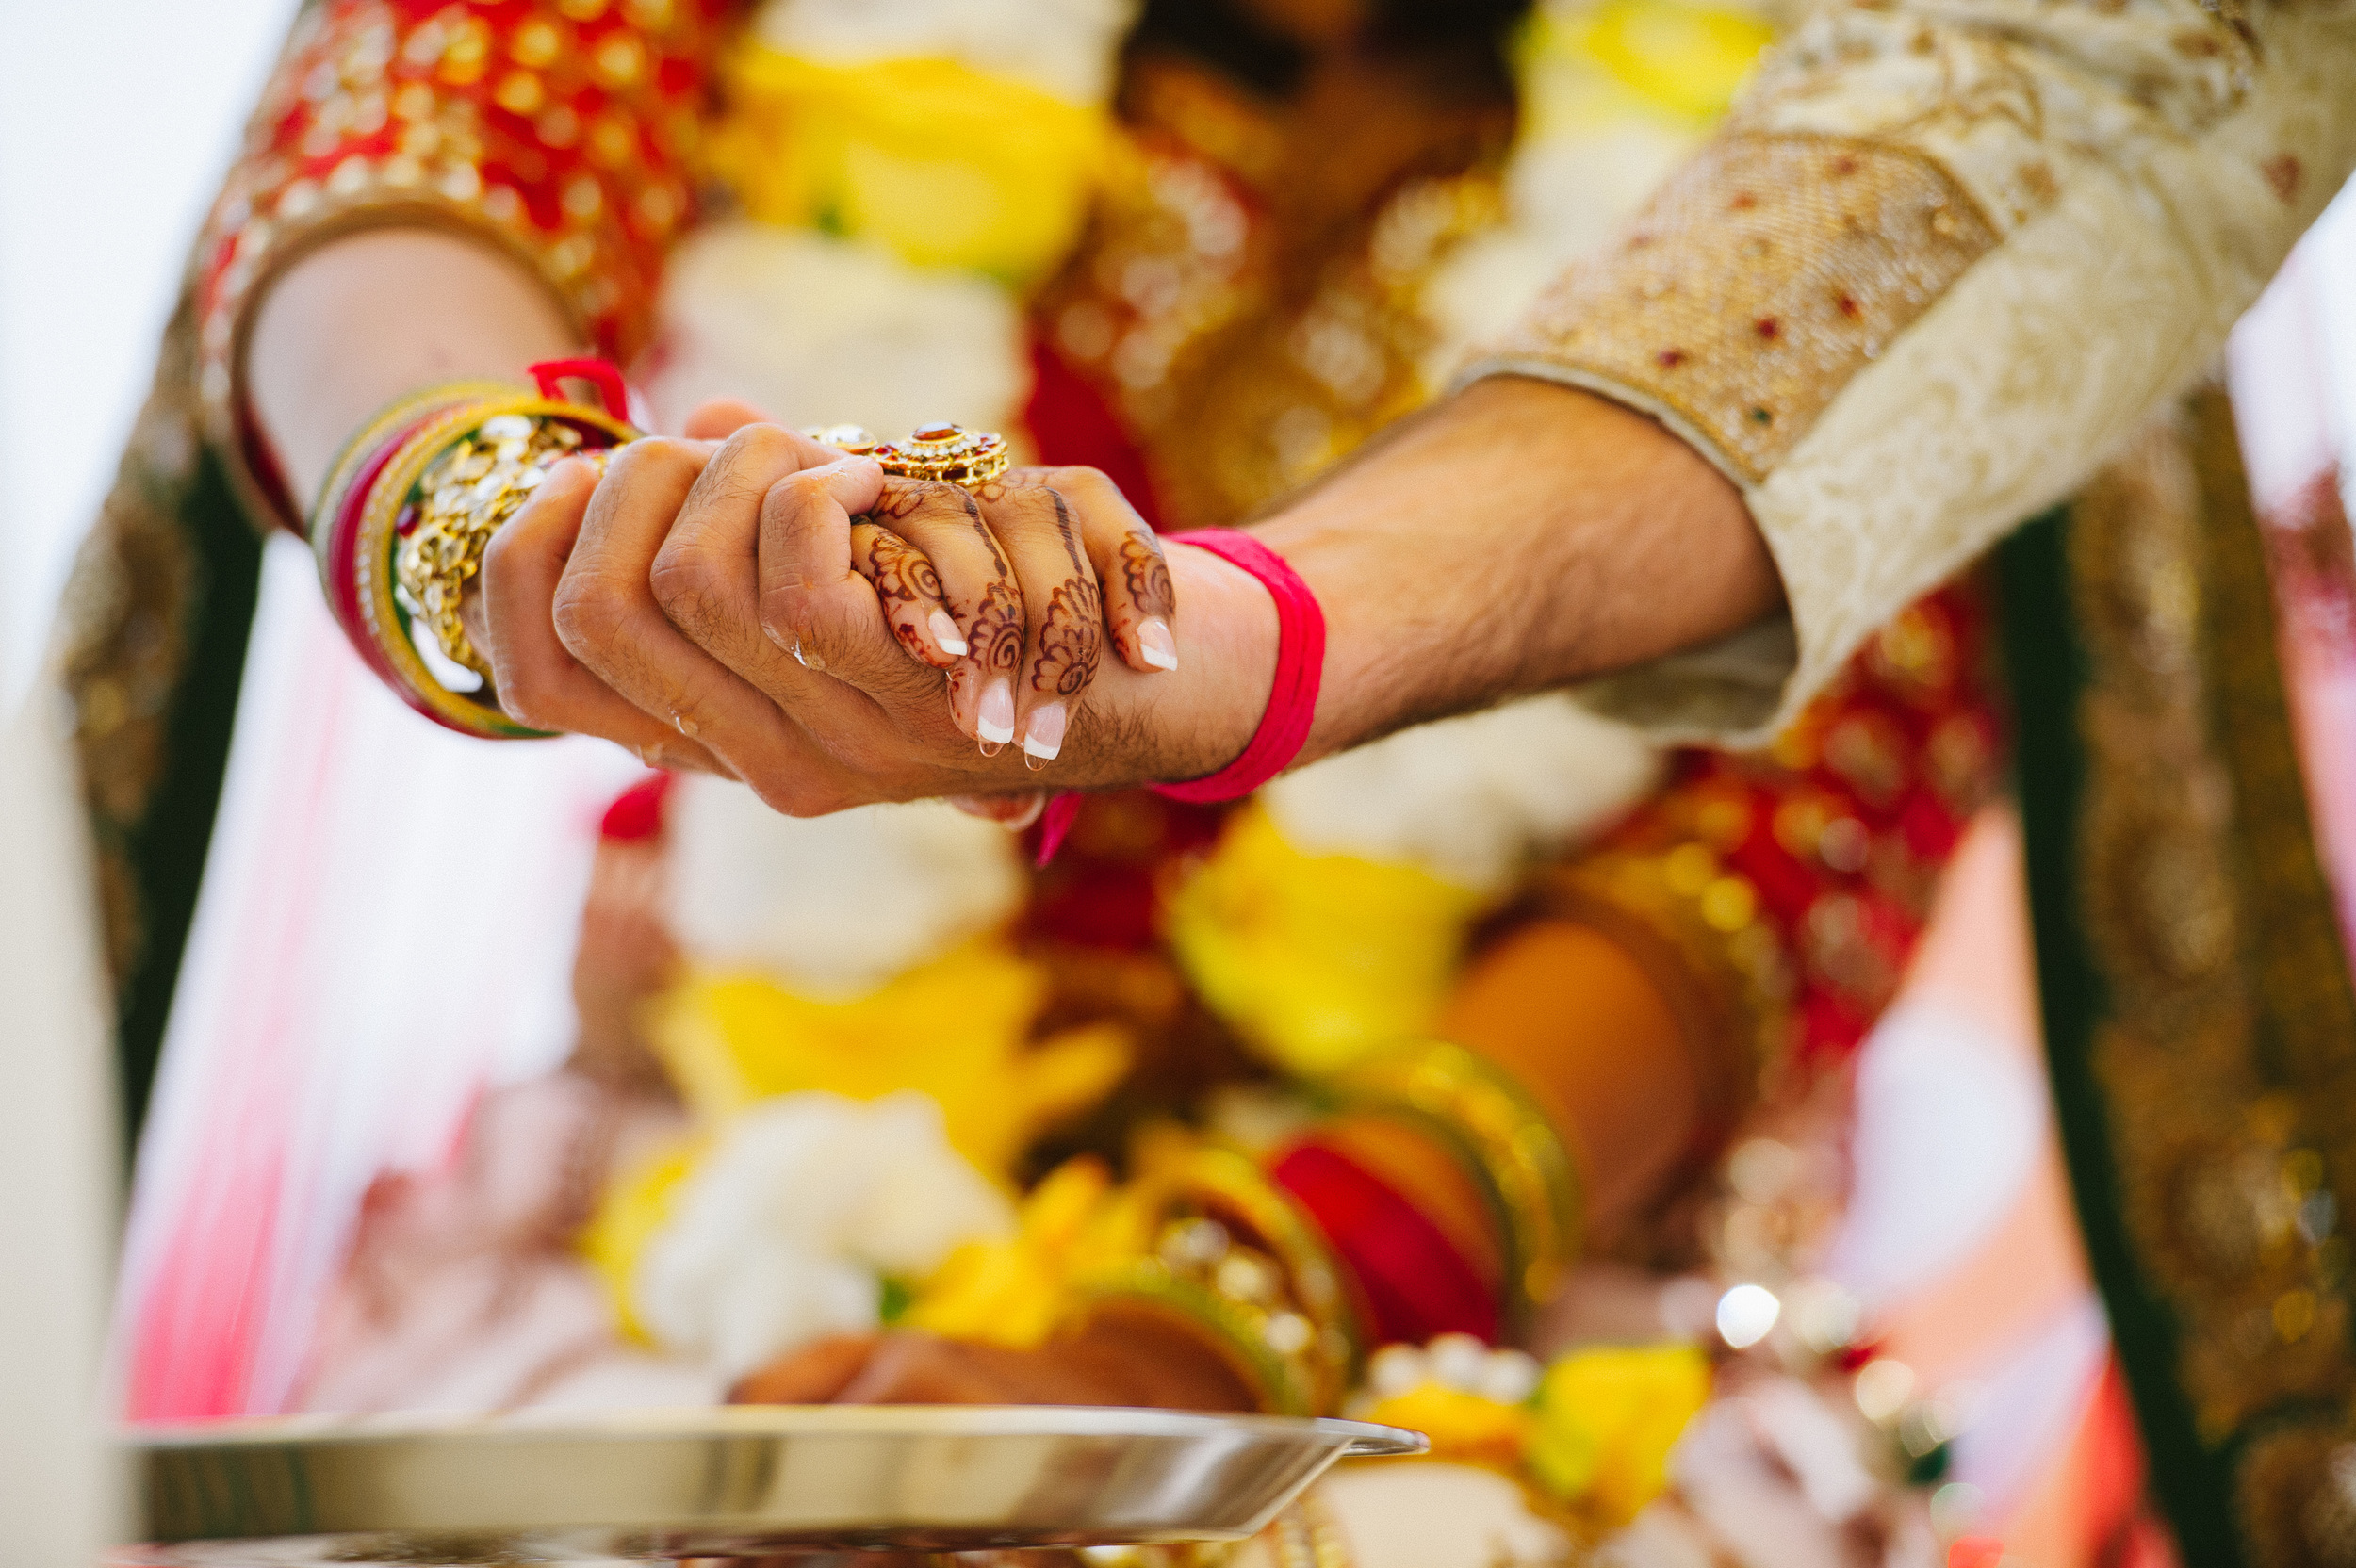 HOLDING HANDS AT HINDU CEREMONY